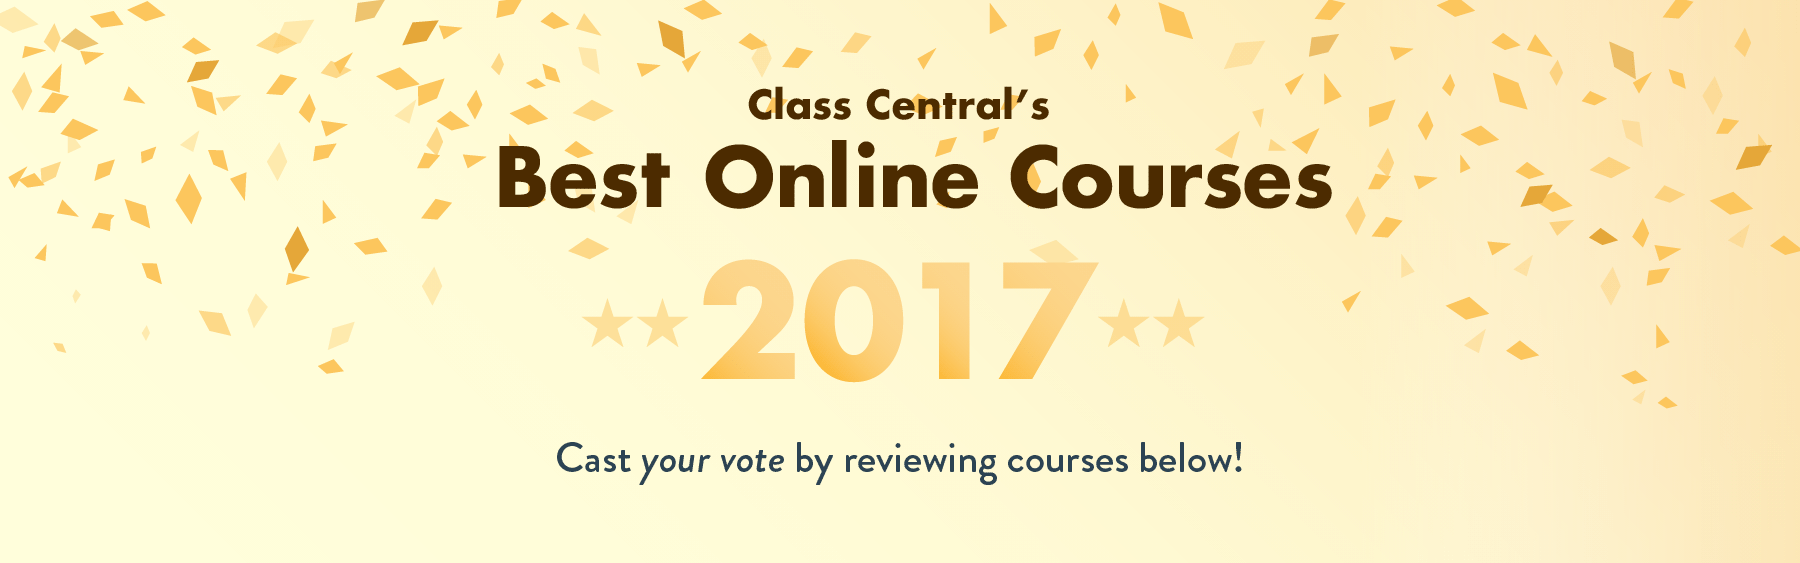 Class Central's Best New Online Courses for 2017 — Cast your vote!